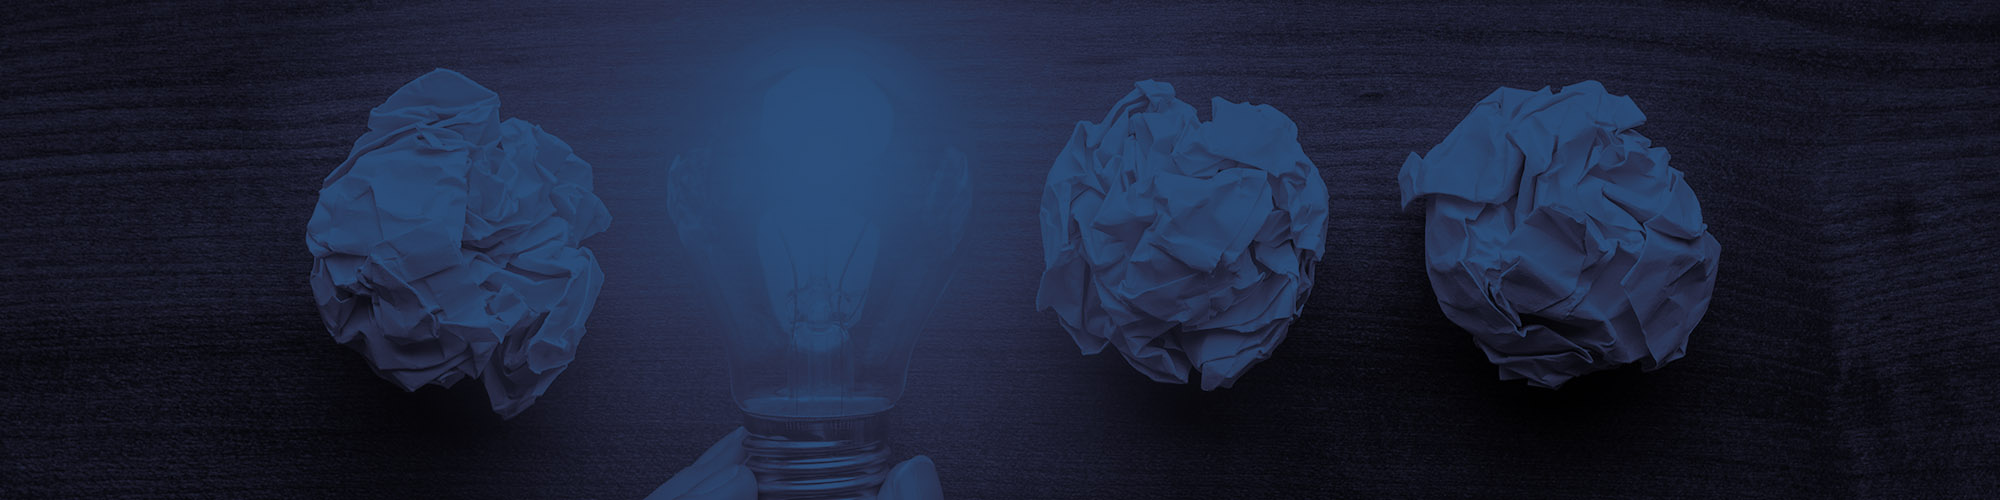 Light Bulb and Crumpled Paper